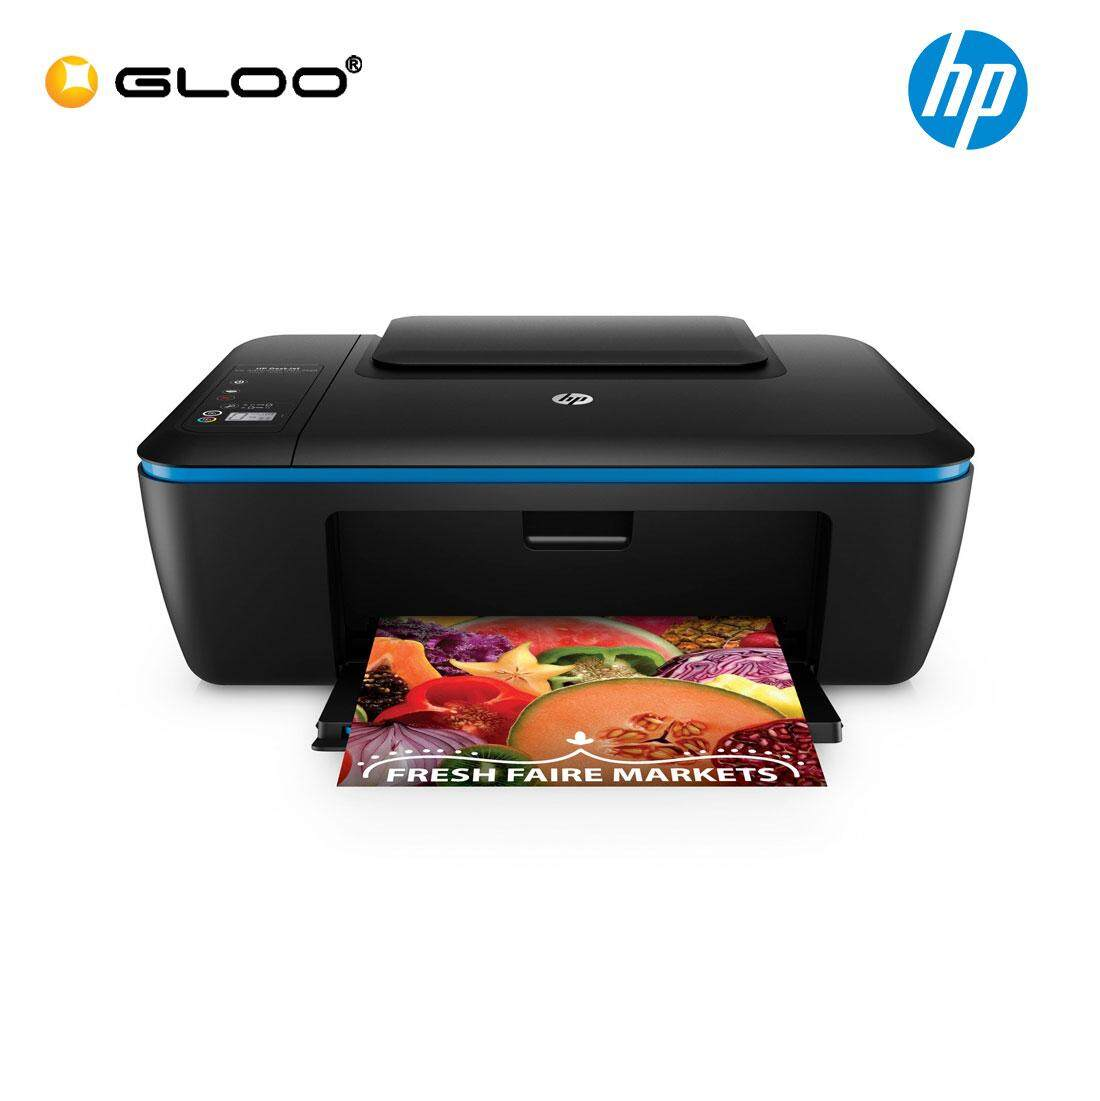 HP Deskjet Ink Advantage Ultra 2529 AIO Printer (K7W98A) - Black